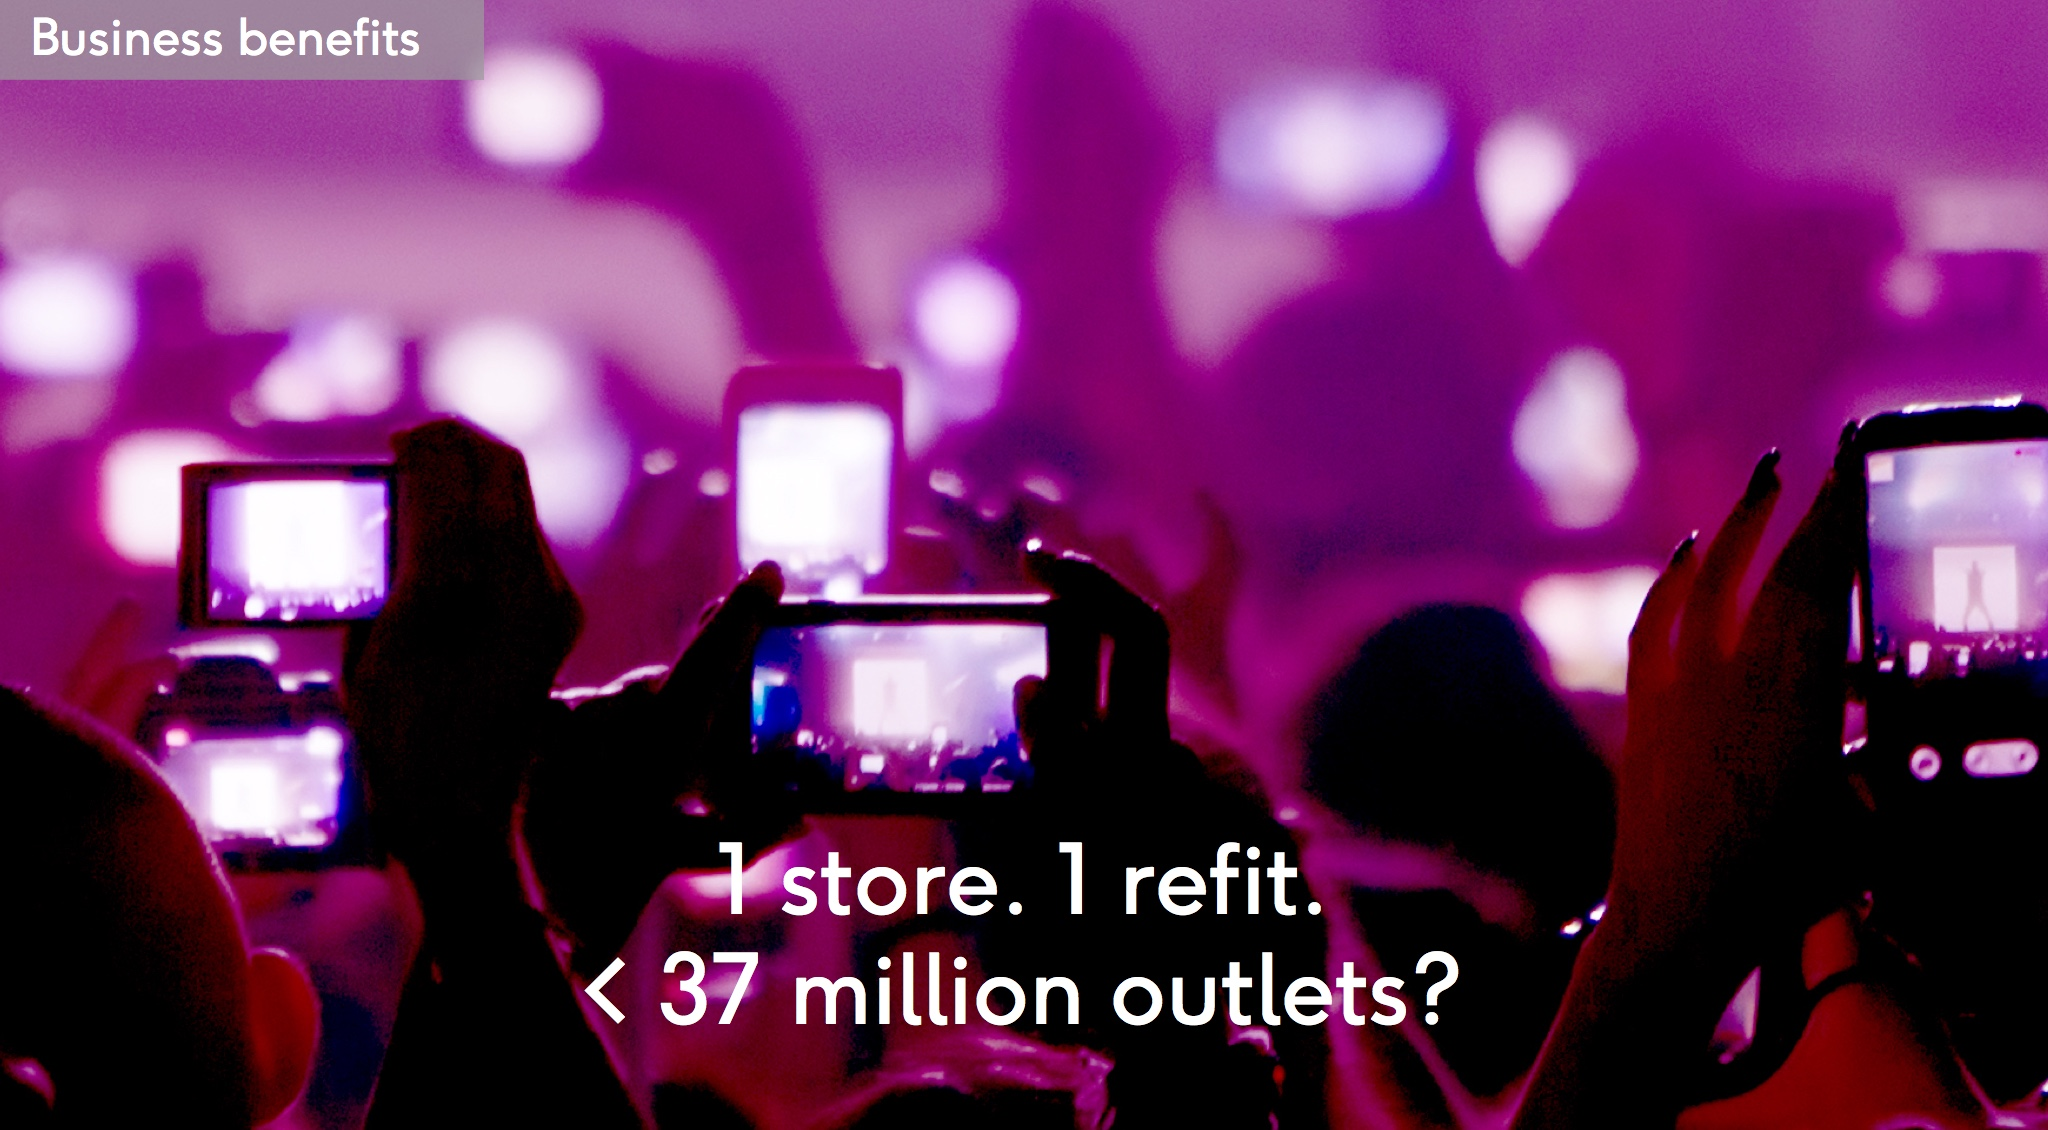 Business benefit: One store refit equals millions of outlets